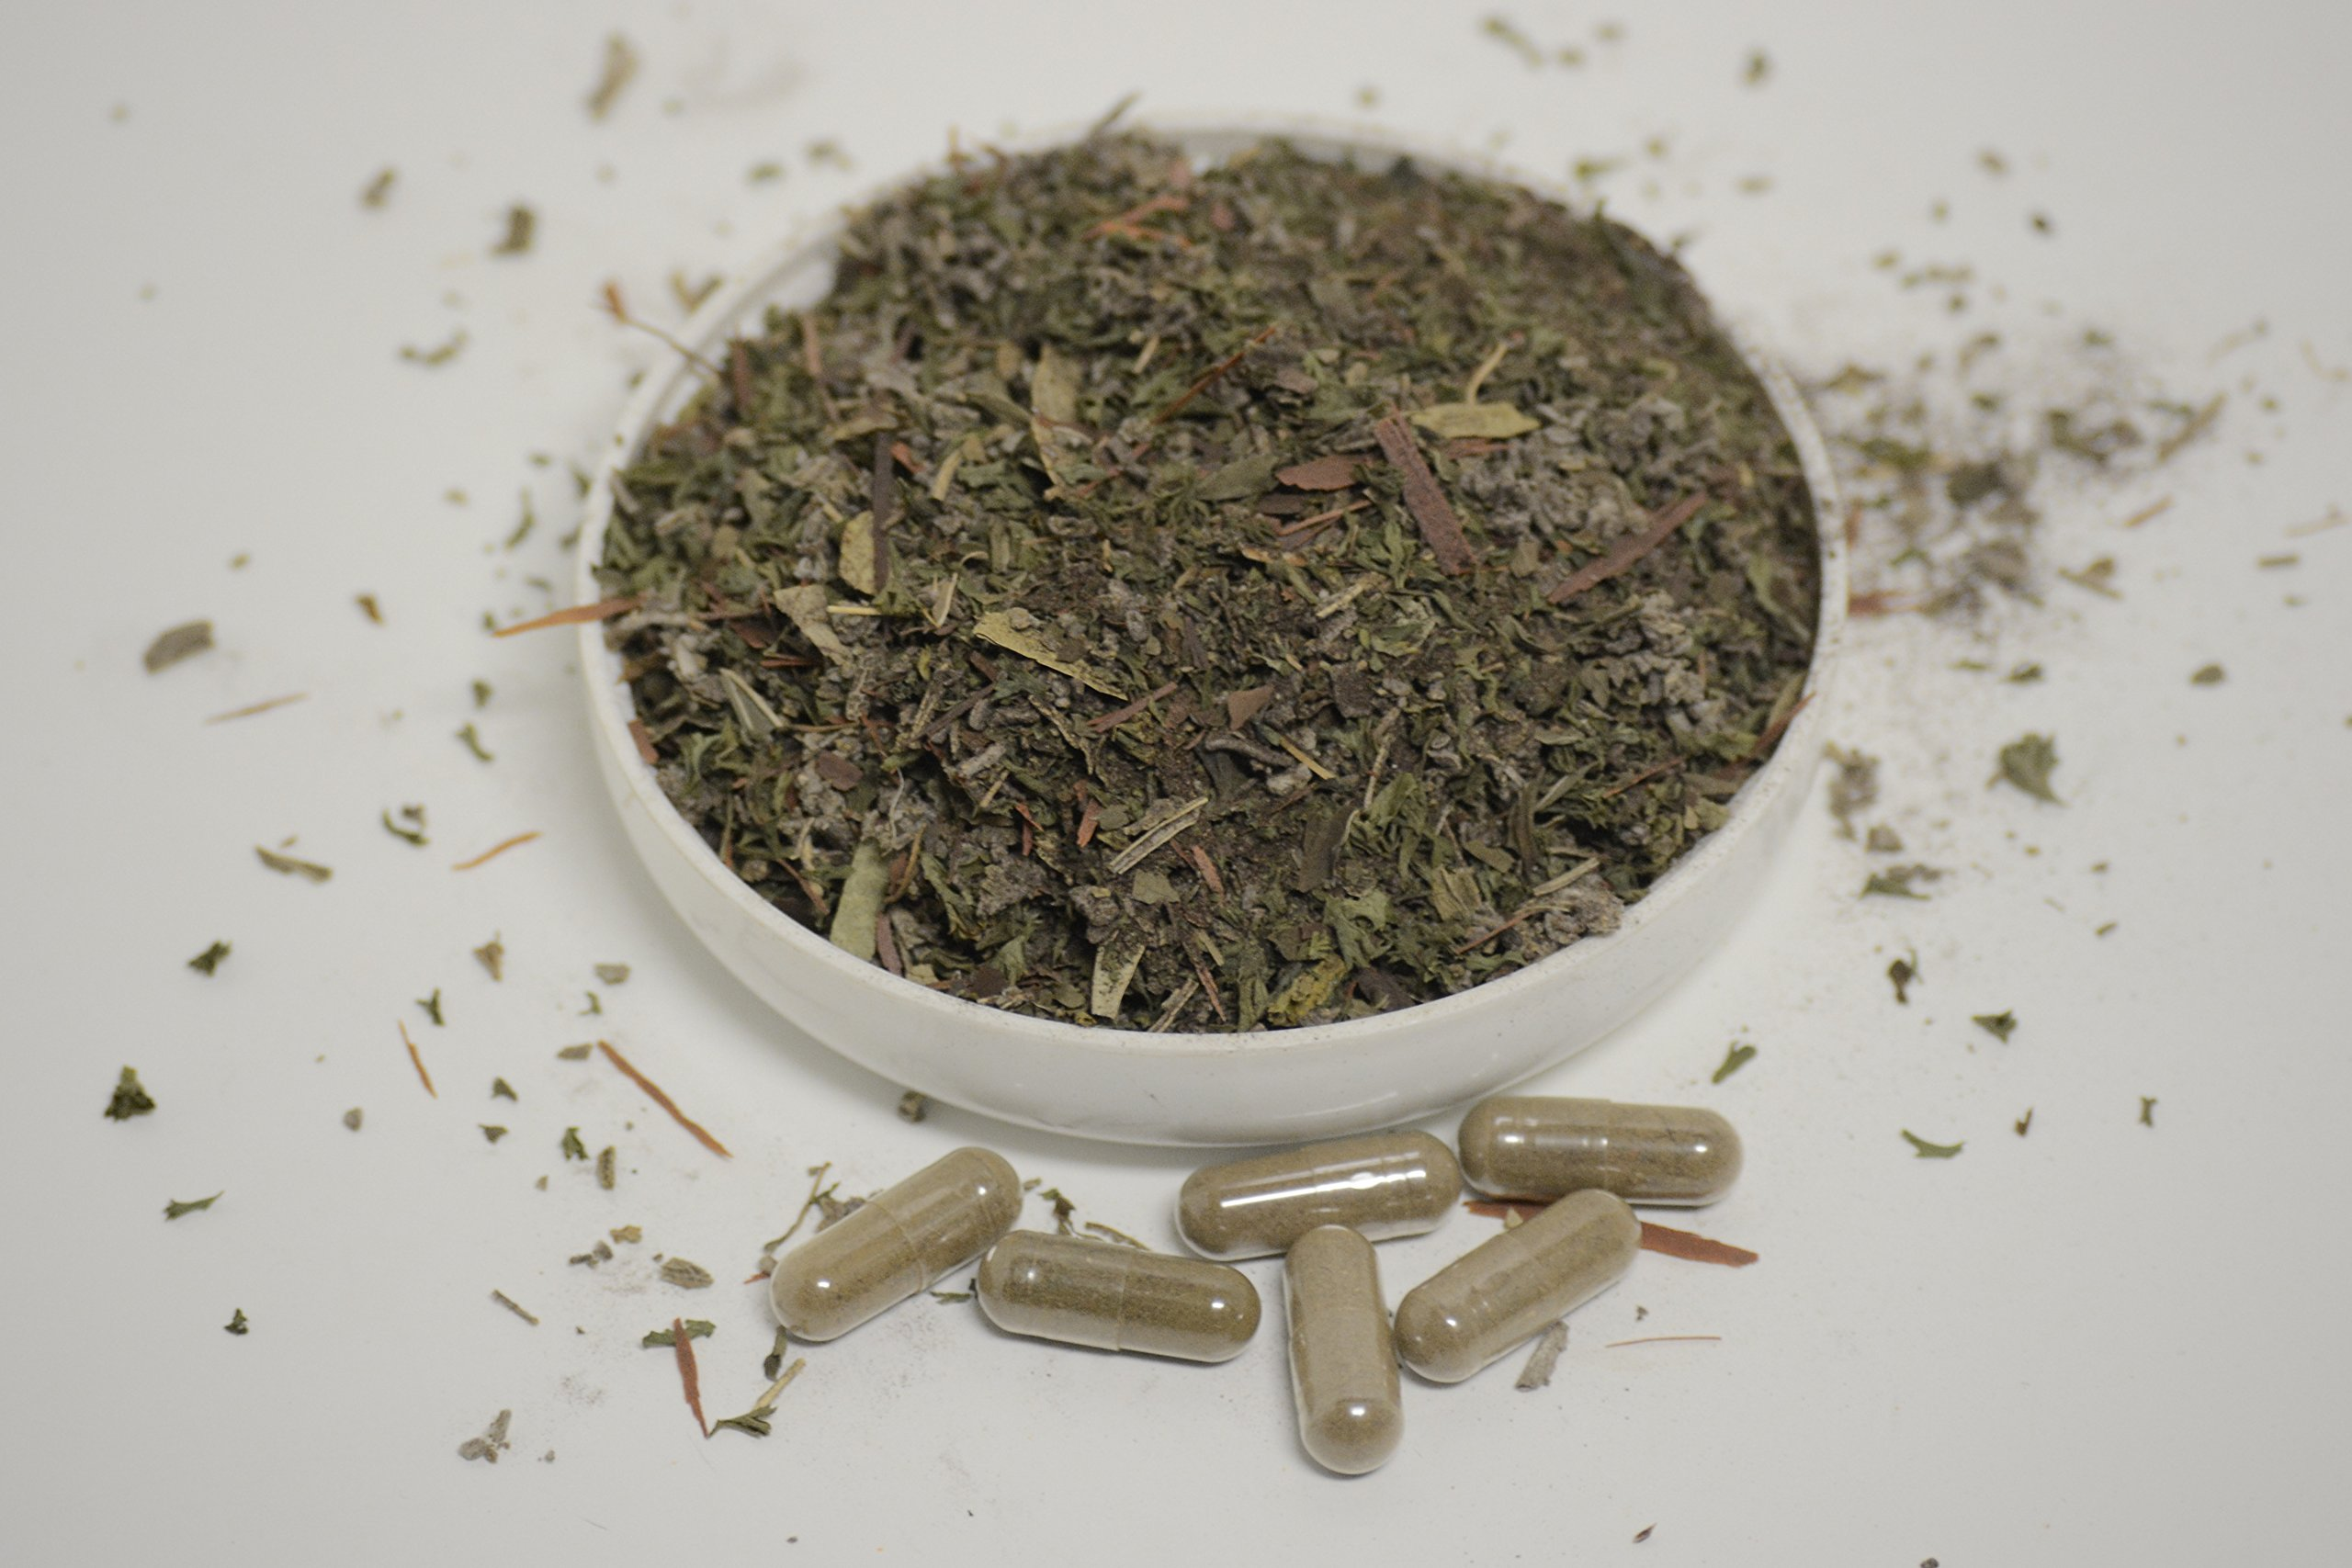 Diane Galloway's Herb Blend Worm Mix Capsules